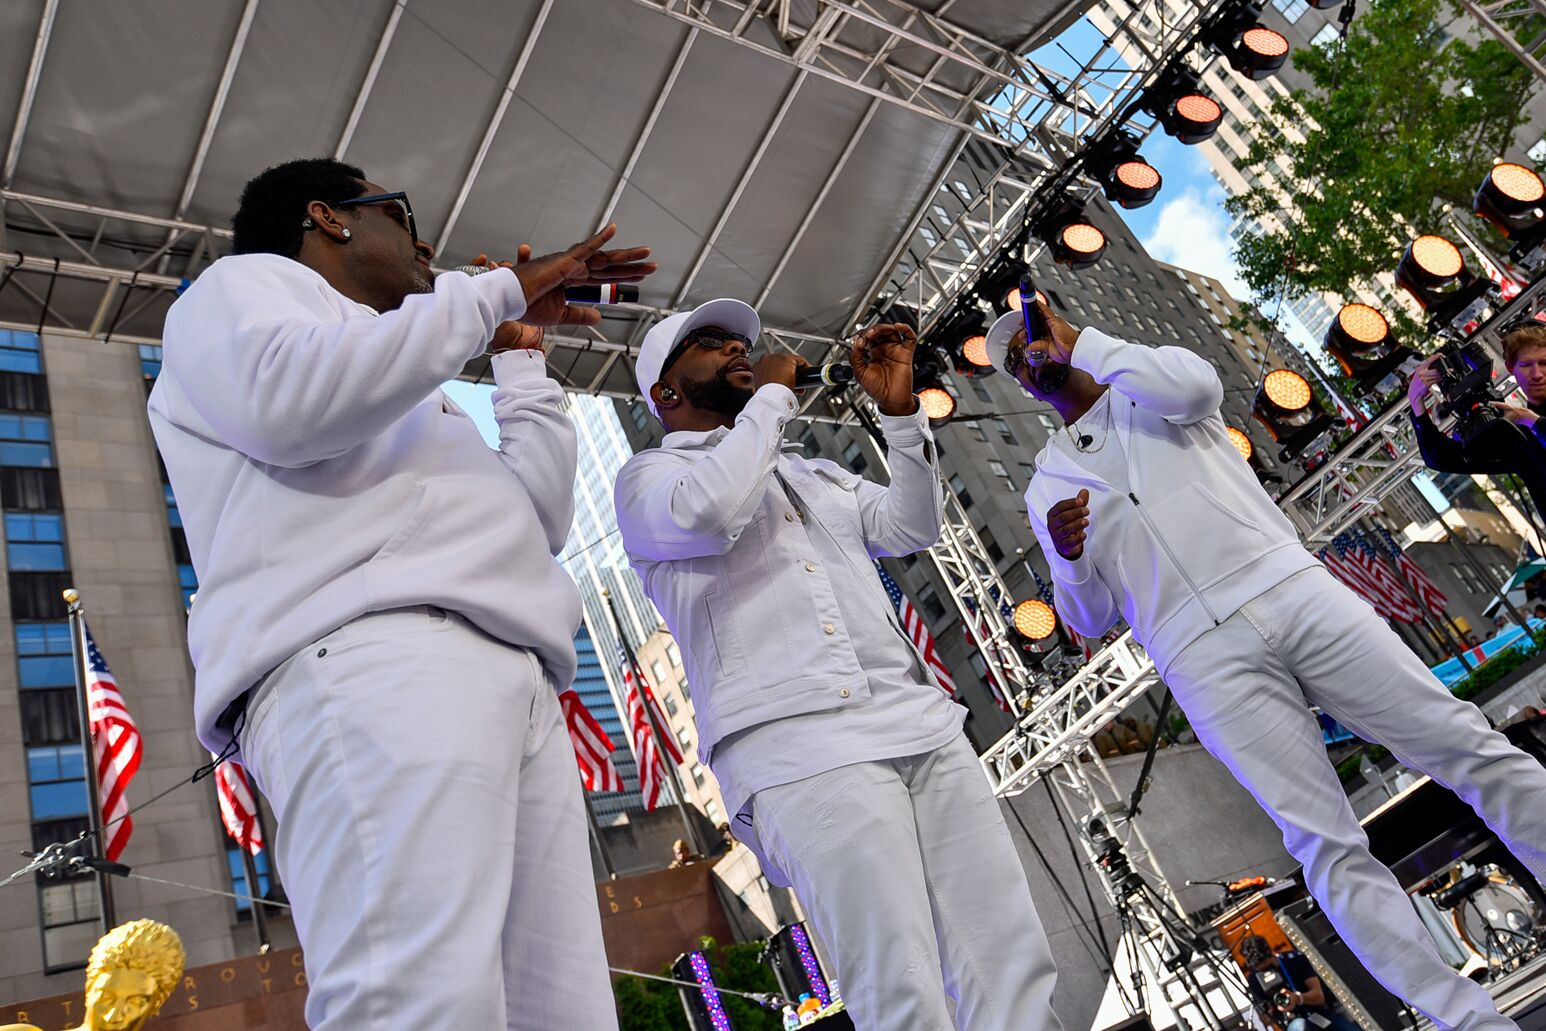 Boyz II Men perform